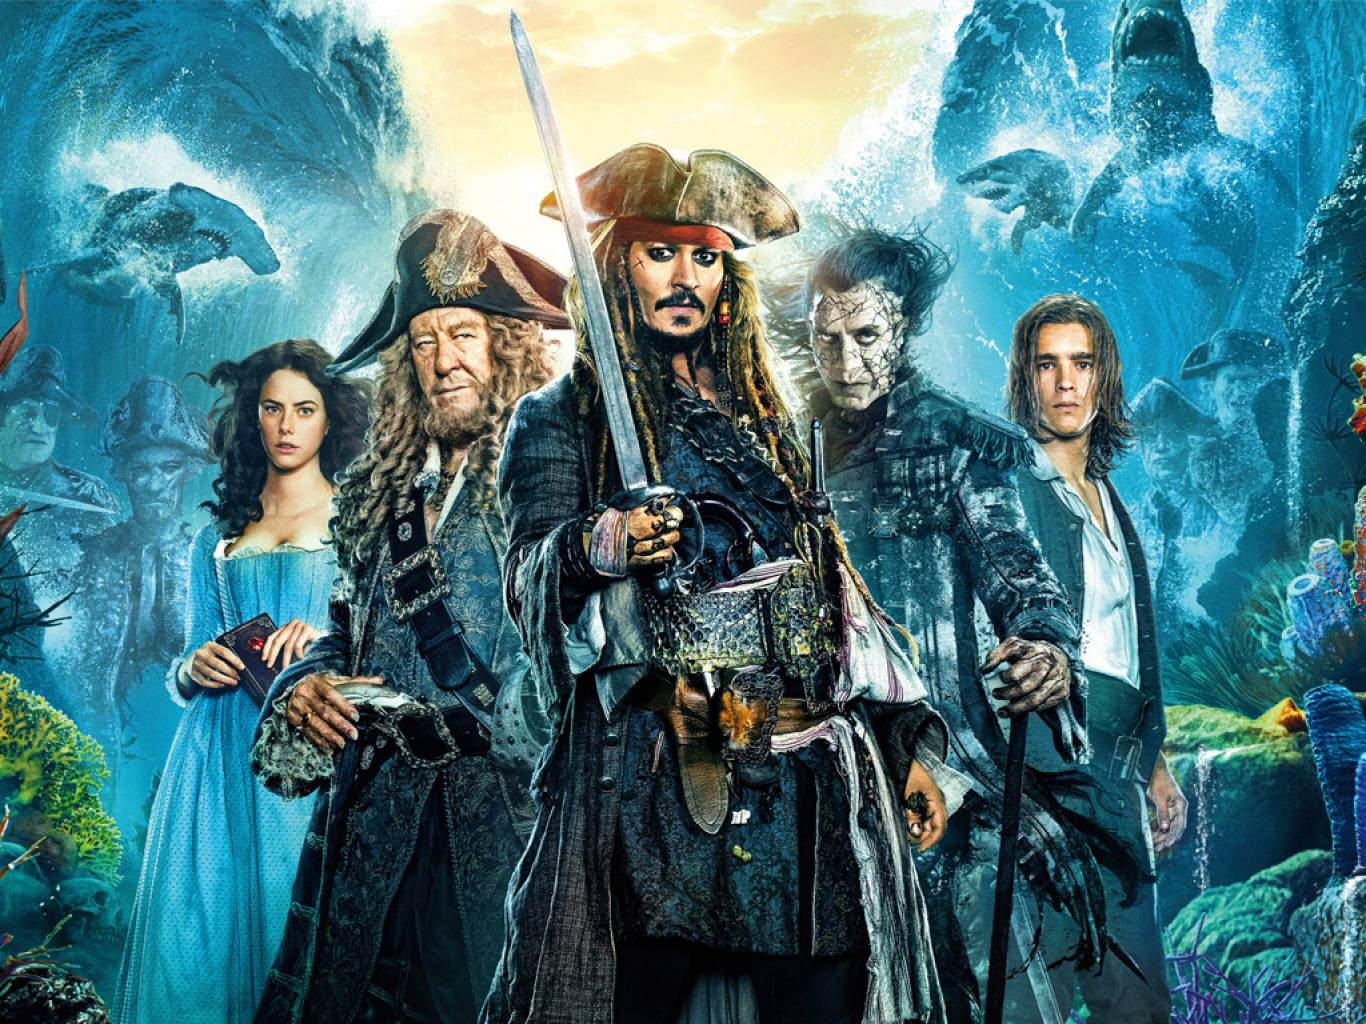 Pirates of the Caribbean: Dead Men Tell No Tales Wallpapers